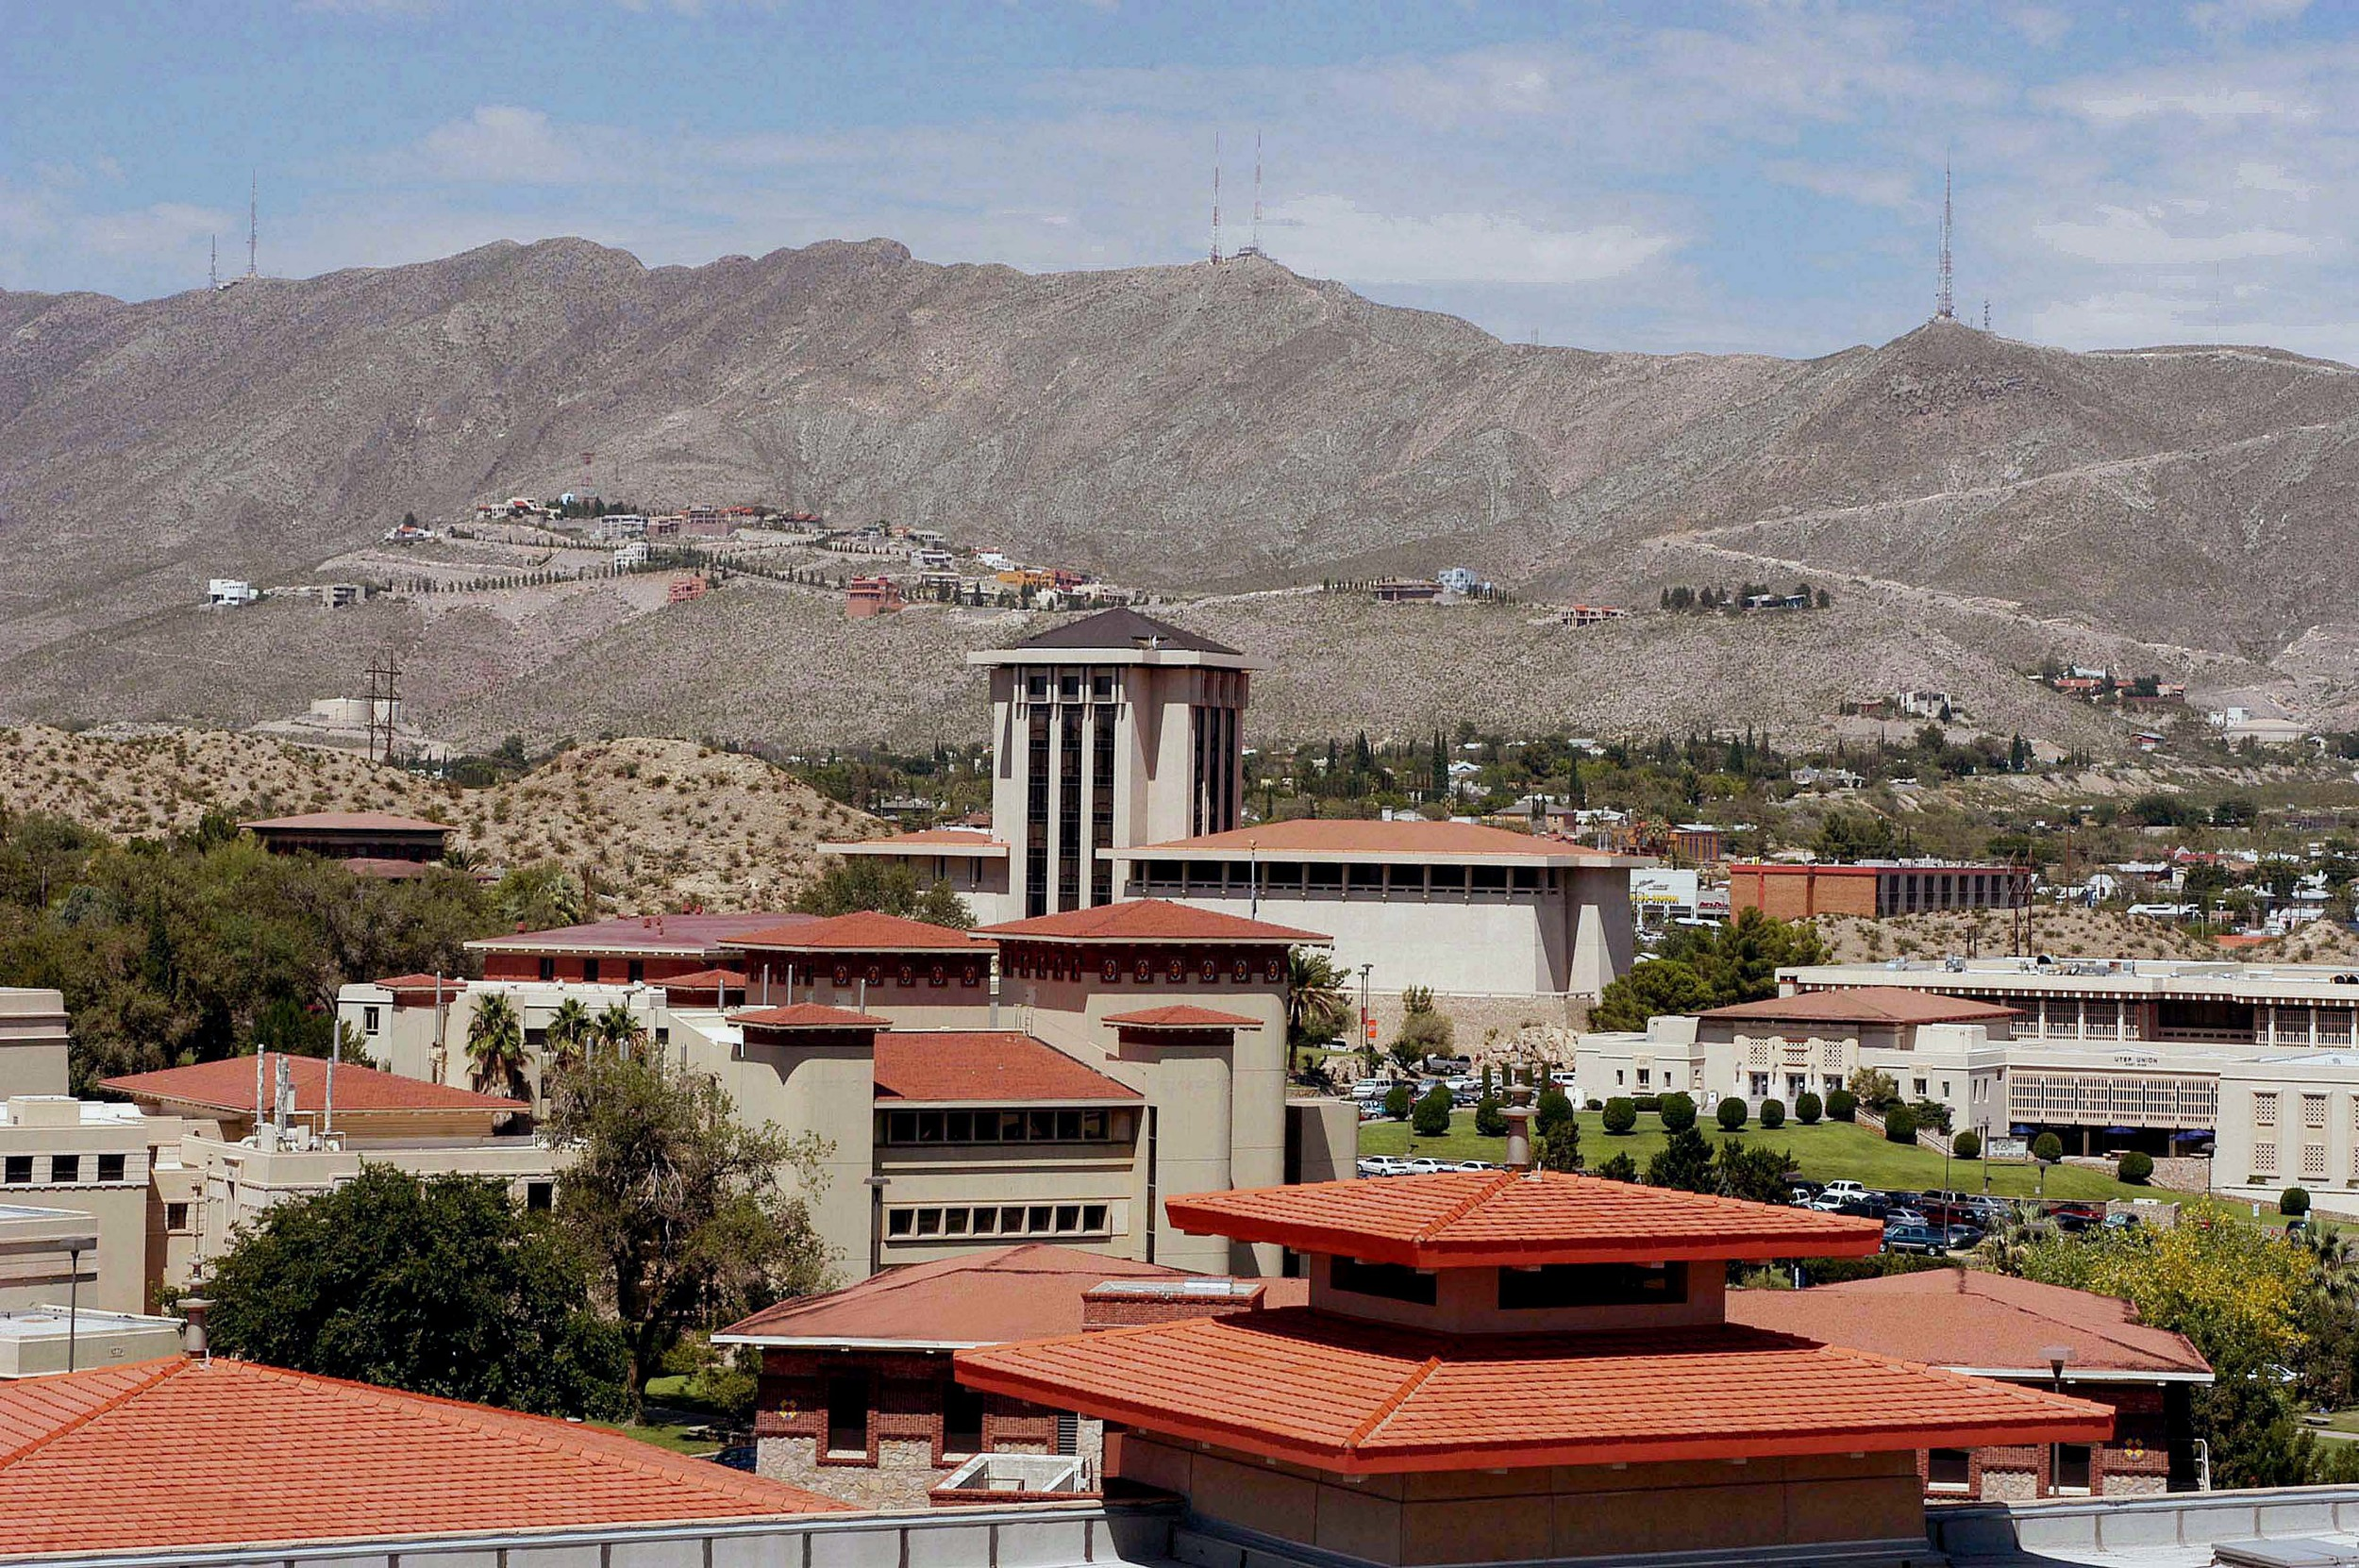 University of Texas - El Paso